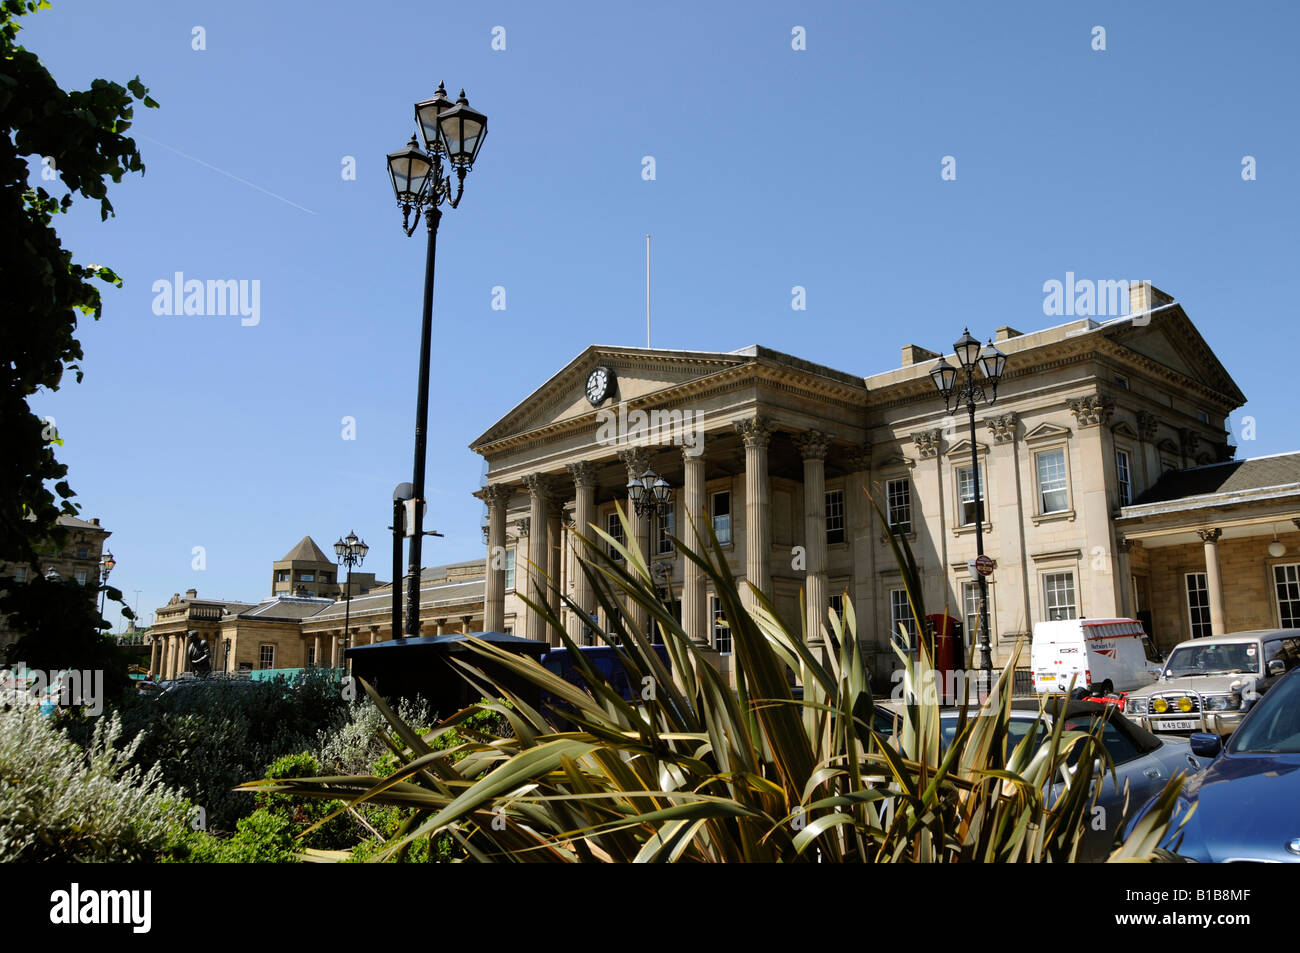 The entrance of the impressive Victorian railway station with ornamental plants in front in Huddersfield - Stock Image